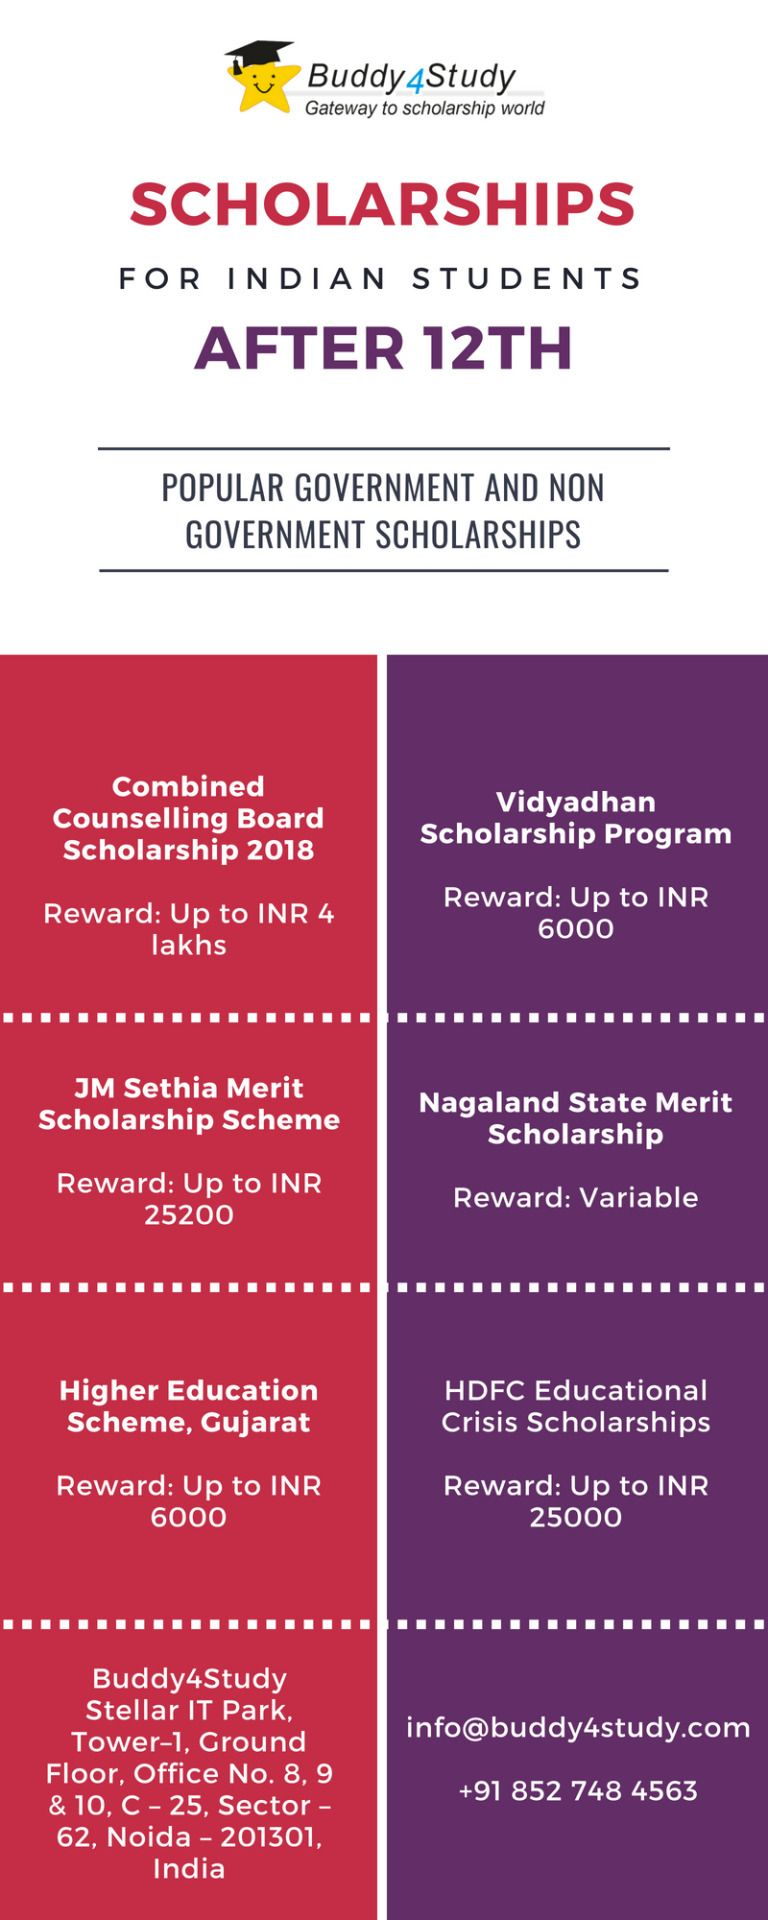 a1ed4c57175e3248b45b5134894e98e3 - How To Get Scholarship In Canada For Indian Students